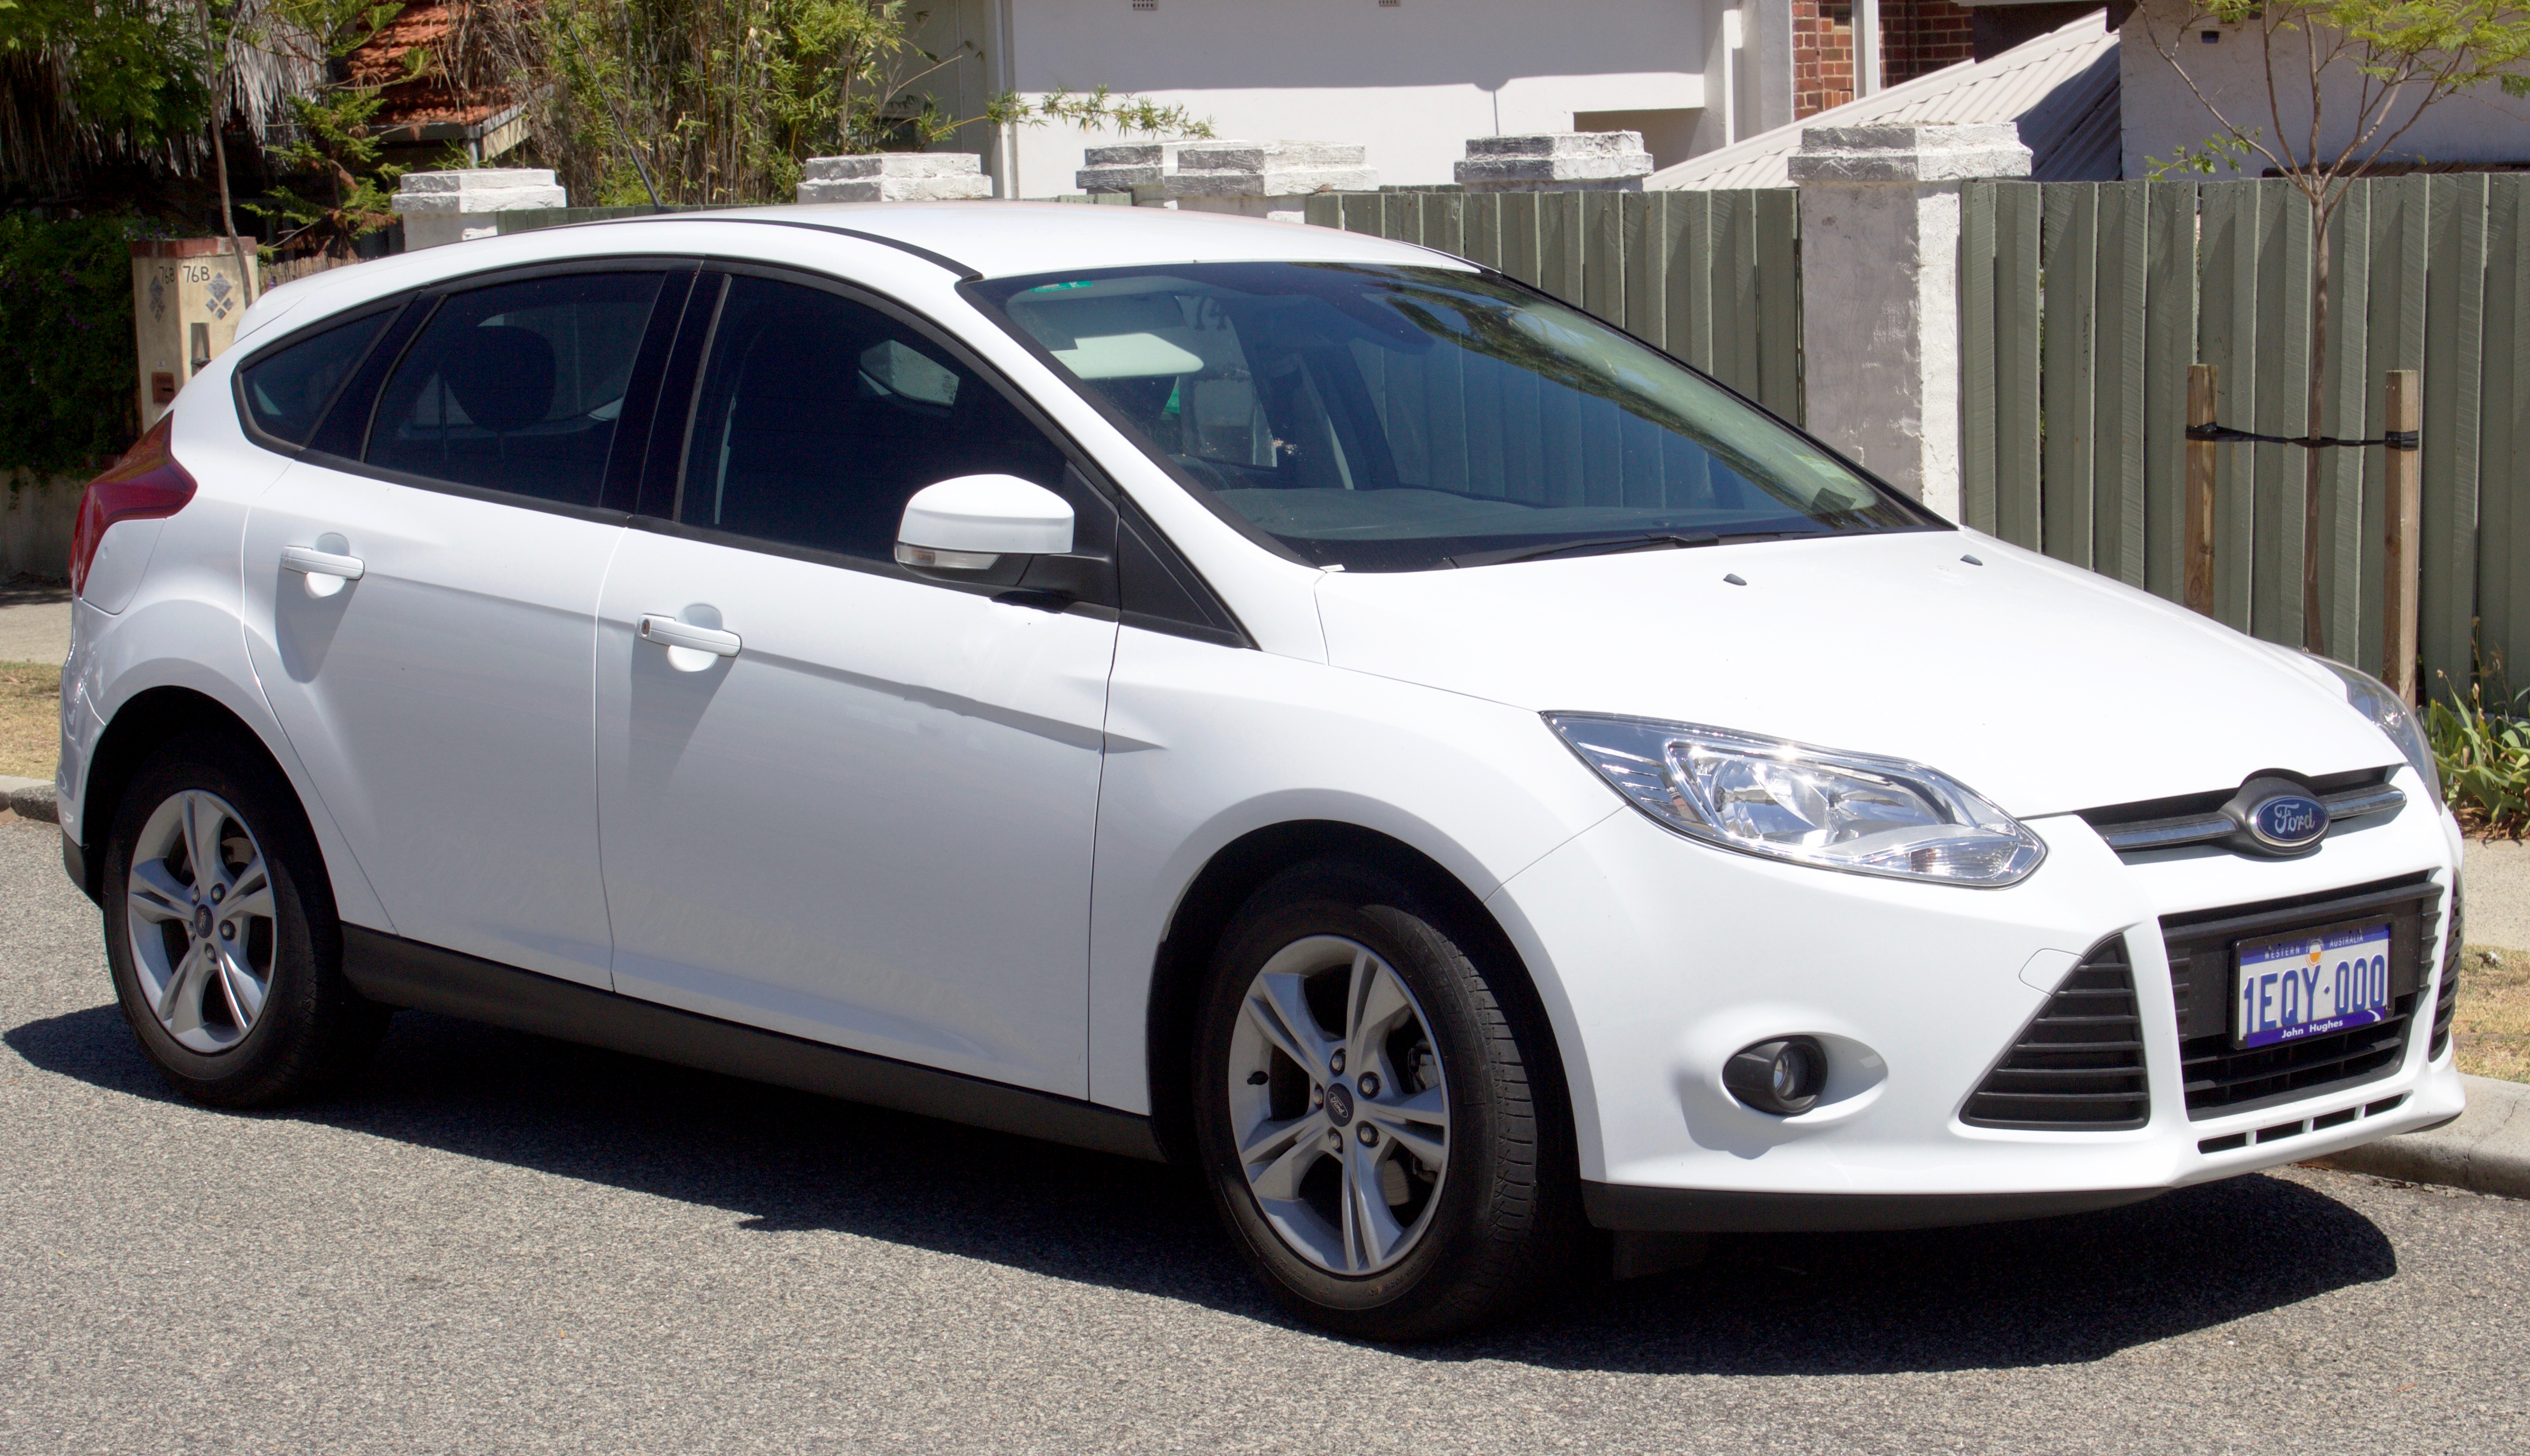 file:2013-2014 ford focus (lw ii) trend hatchback (2017-01-22) 01